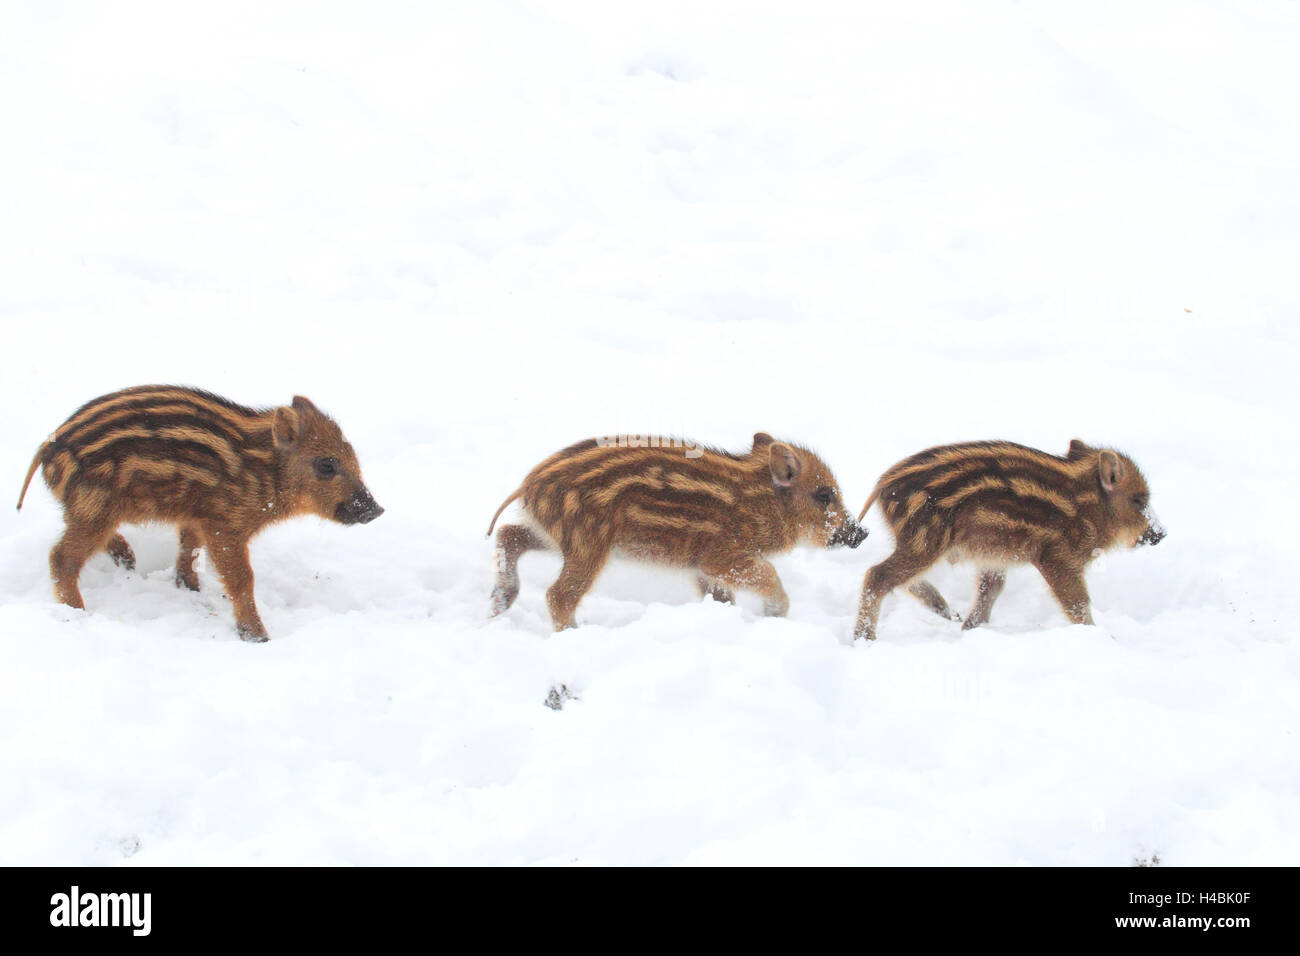 Three young wild boars in the snow, - Stock Image